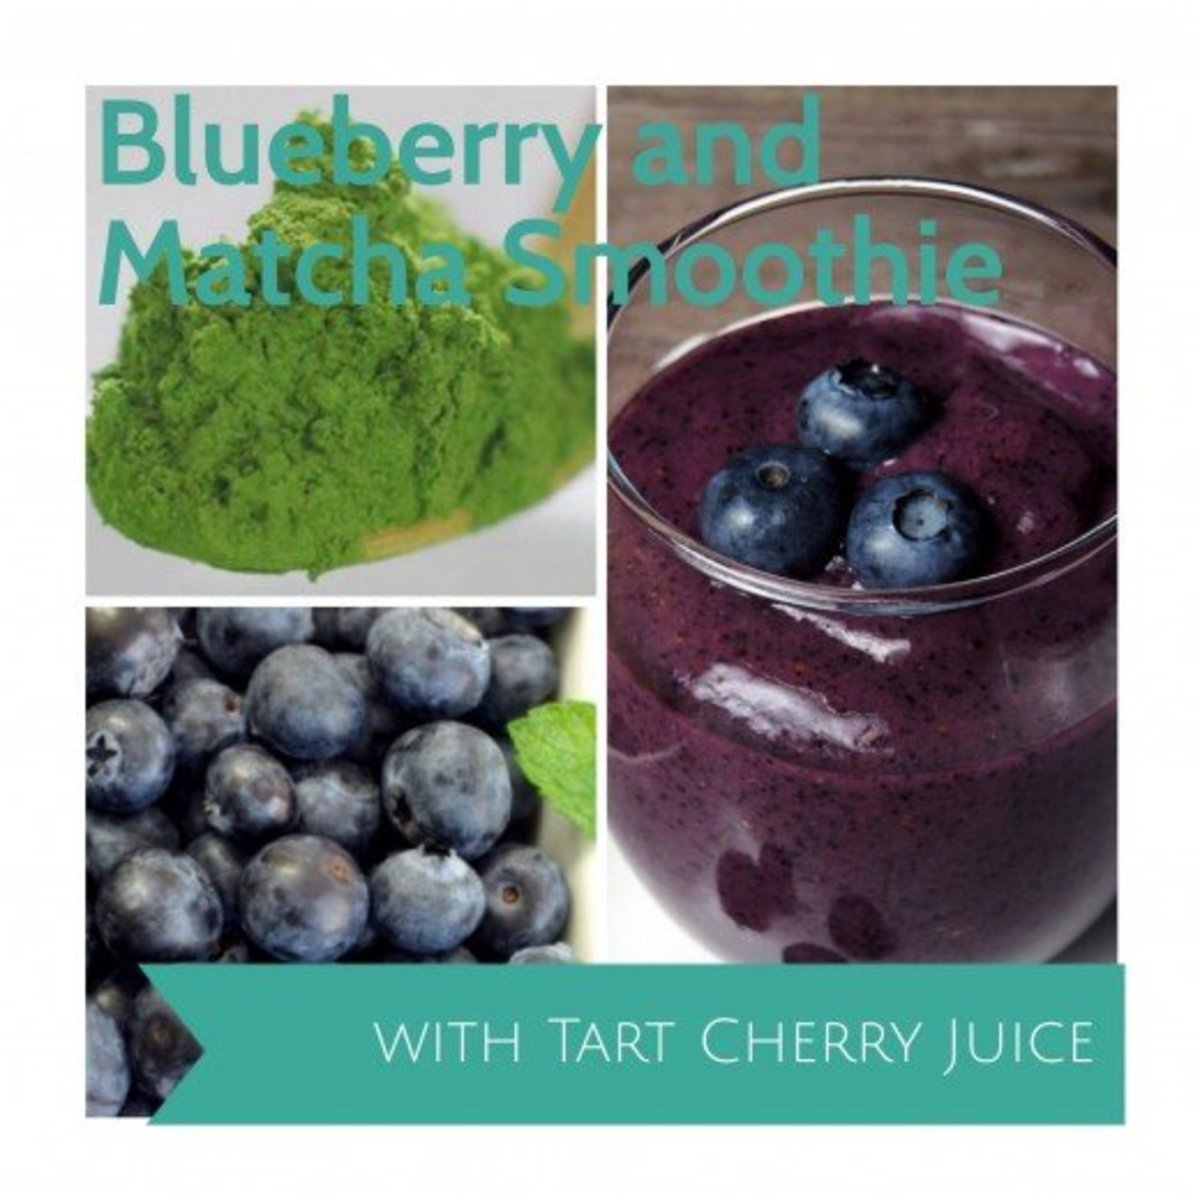 Blueberry, matcha and tart cherry juice smoothie!